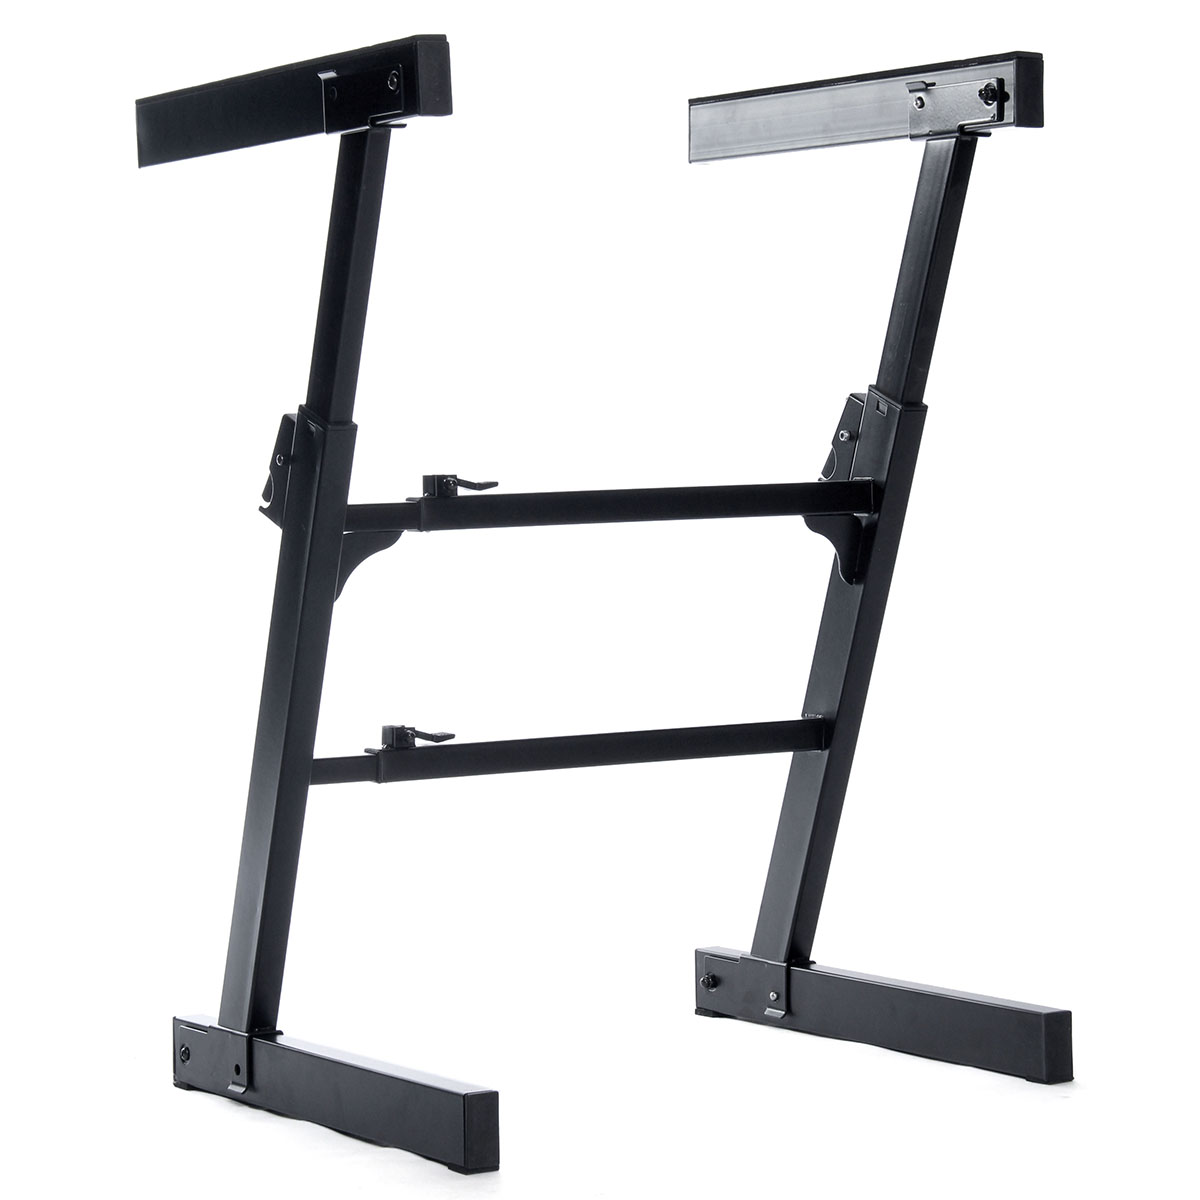 Adjustable Z Type DJ Mixer Arcade Game Console Heavy Duty Music Electronic Keyboard Stand Electric Digital Piano Organ Holder